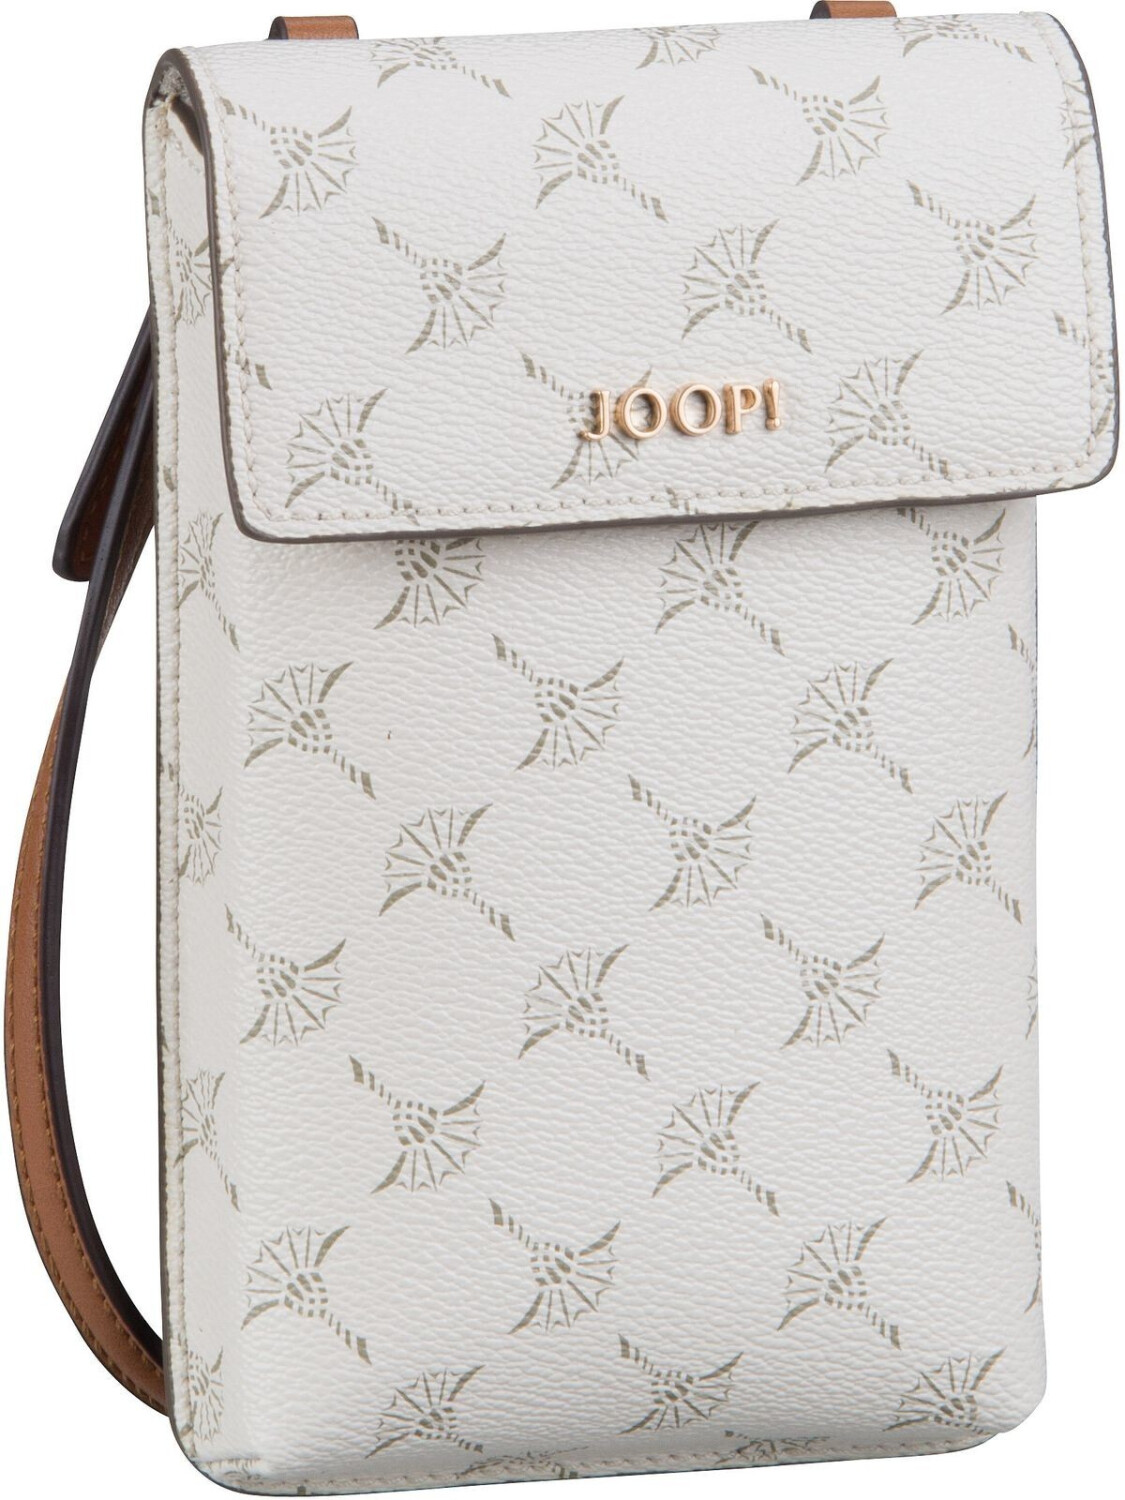 Image of Joop! Phonebag Cortina Pippa White